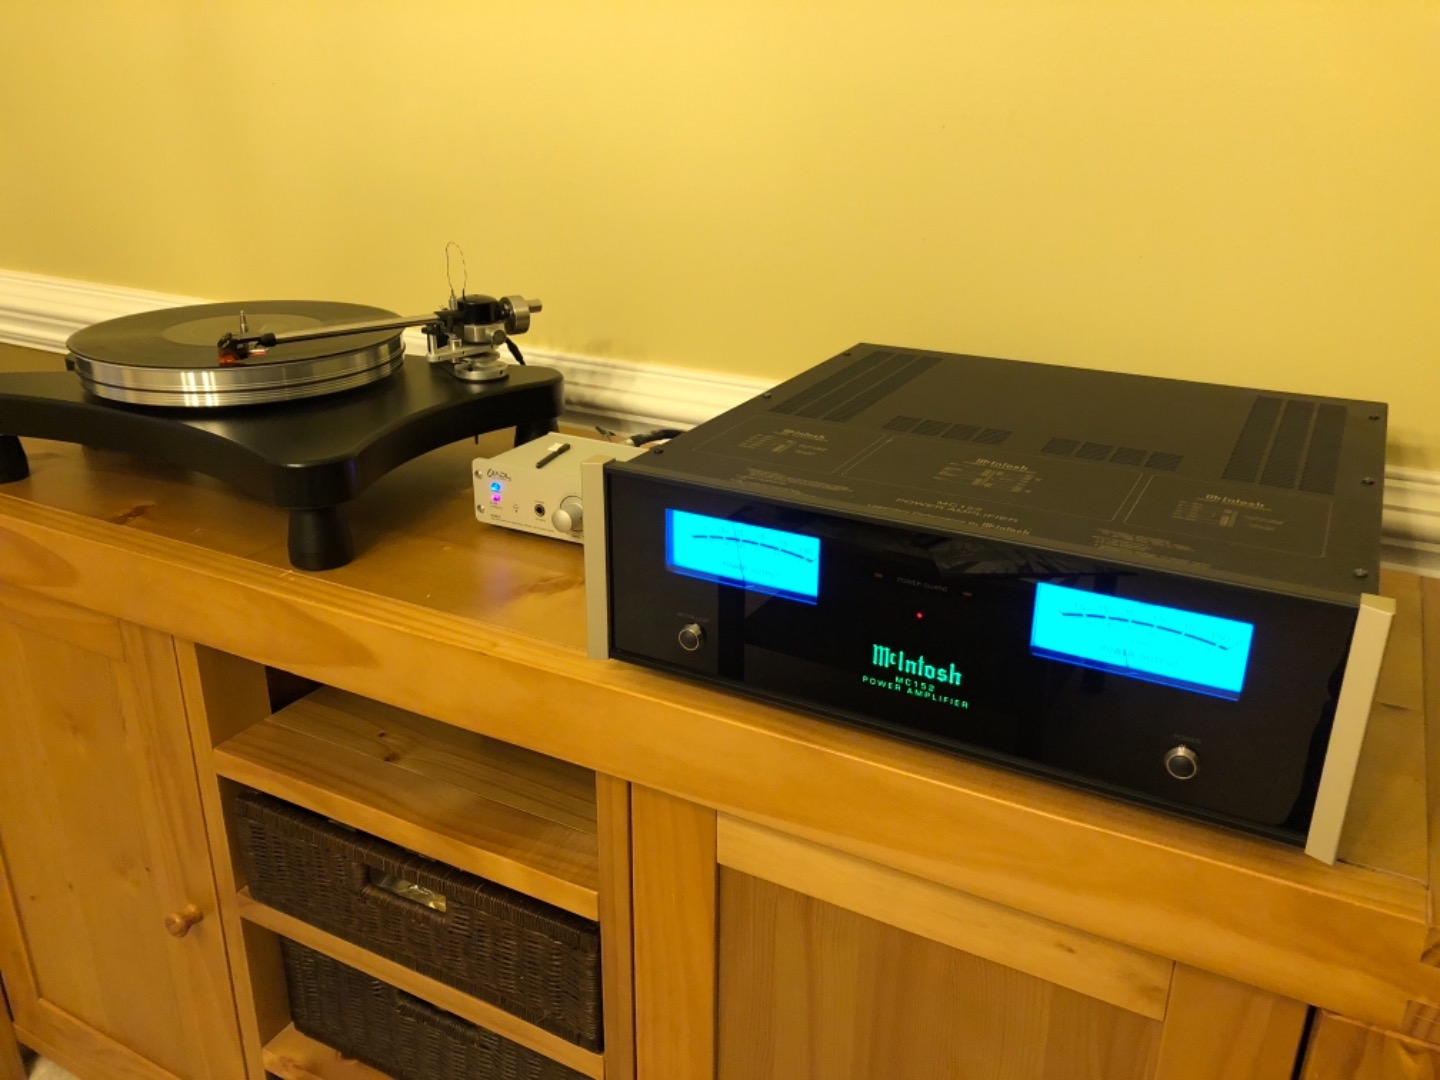 McIntosh MC152 Stereo power amplifier at Crutchfield